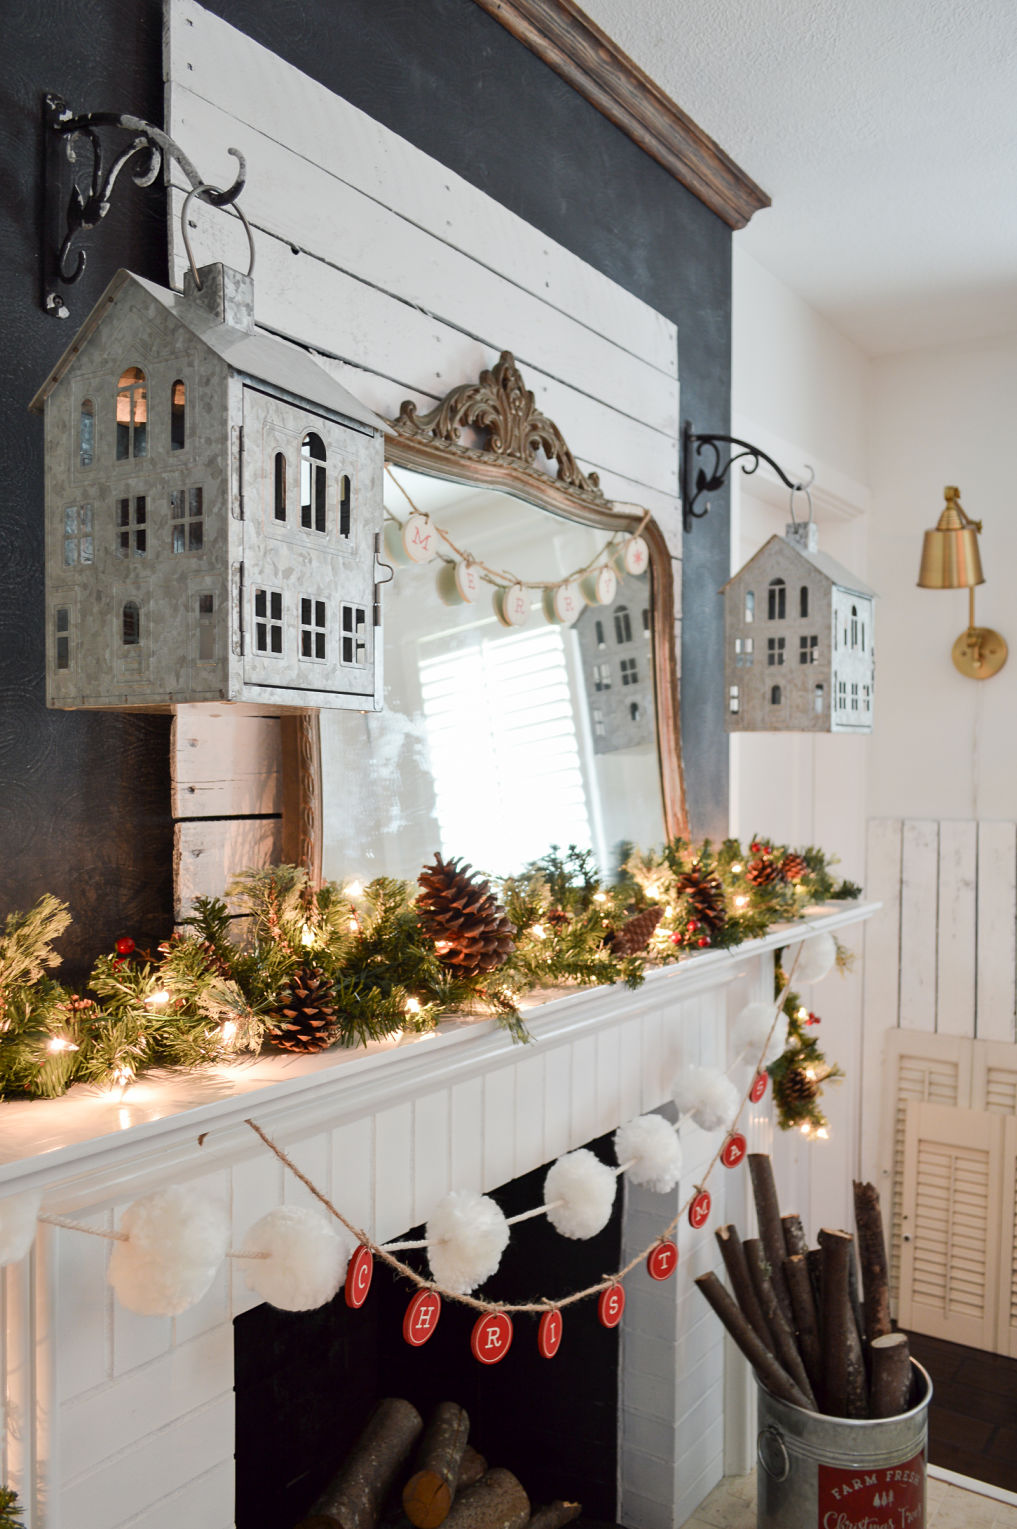 Beautiful Christmas mantel with house lanterns kellyelko.com #christmasdecor #christmasmantel #farmhousechristmas